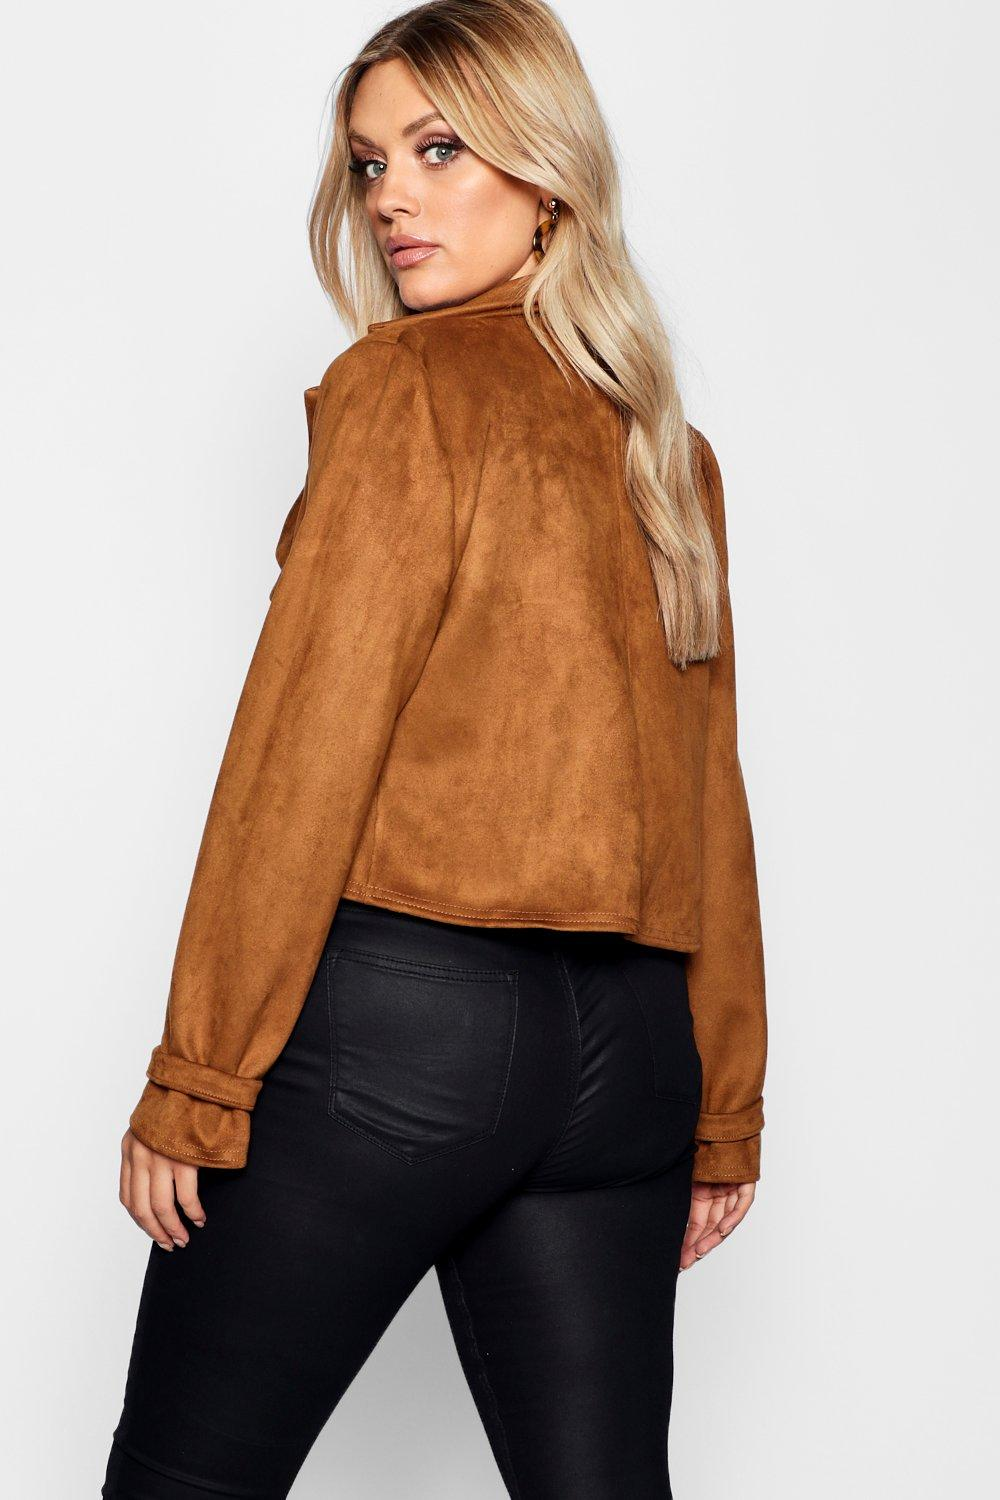 Jacket Crop Button Horn Plus tan Suedette wpnaA0x7